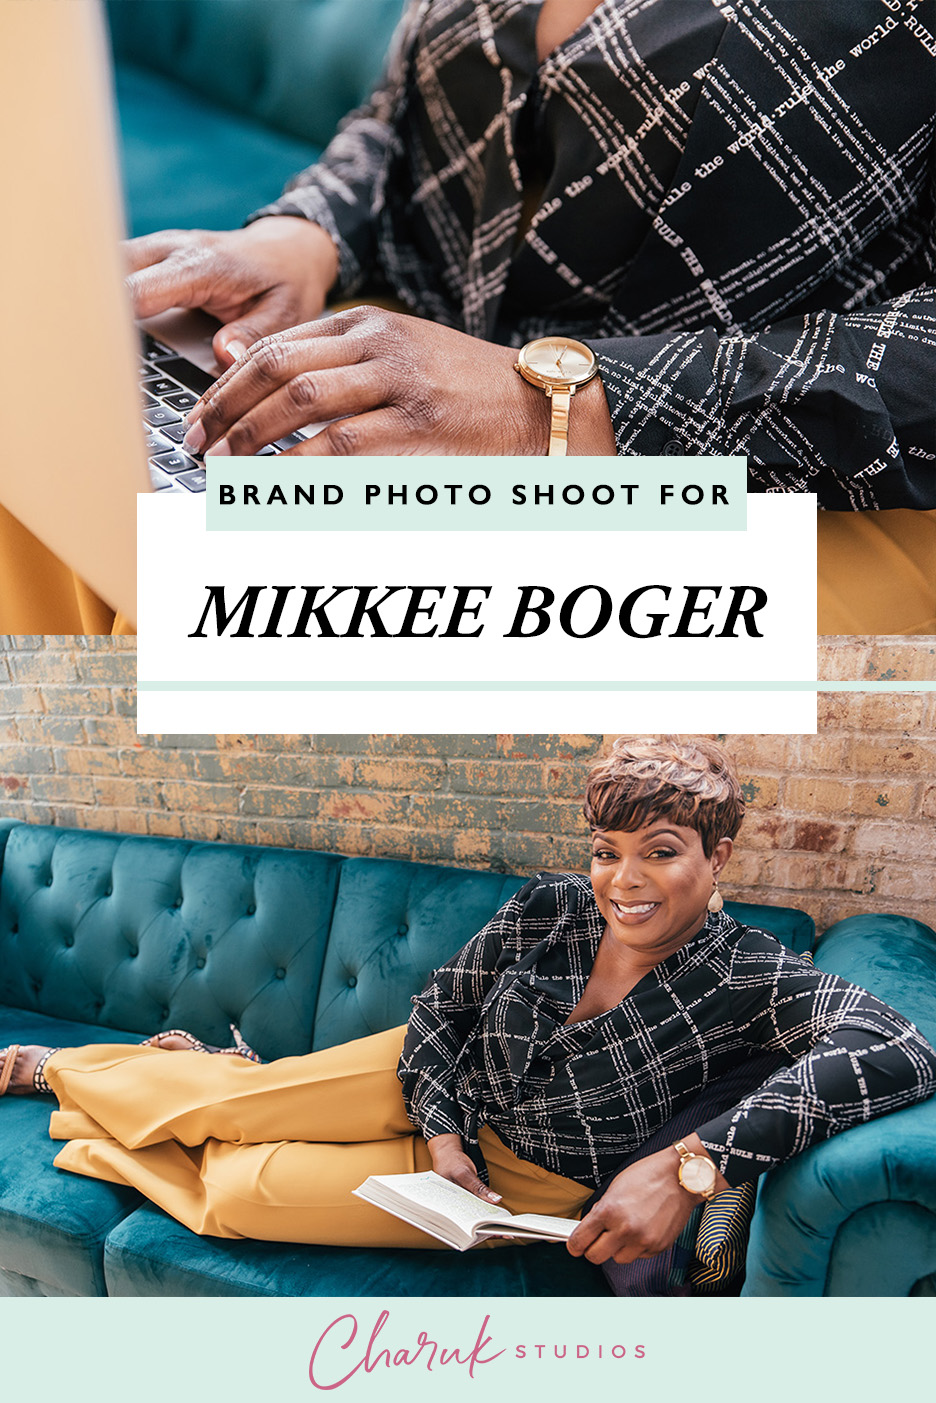 Brand Photo Shoot for Mikkee Boger by Charuk Studios